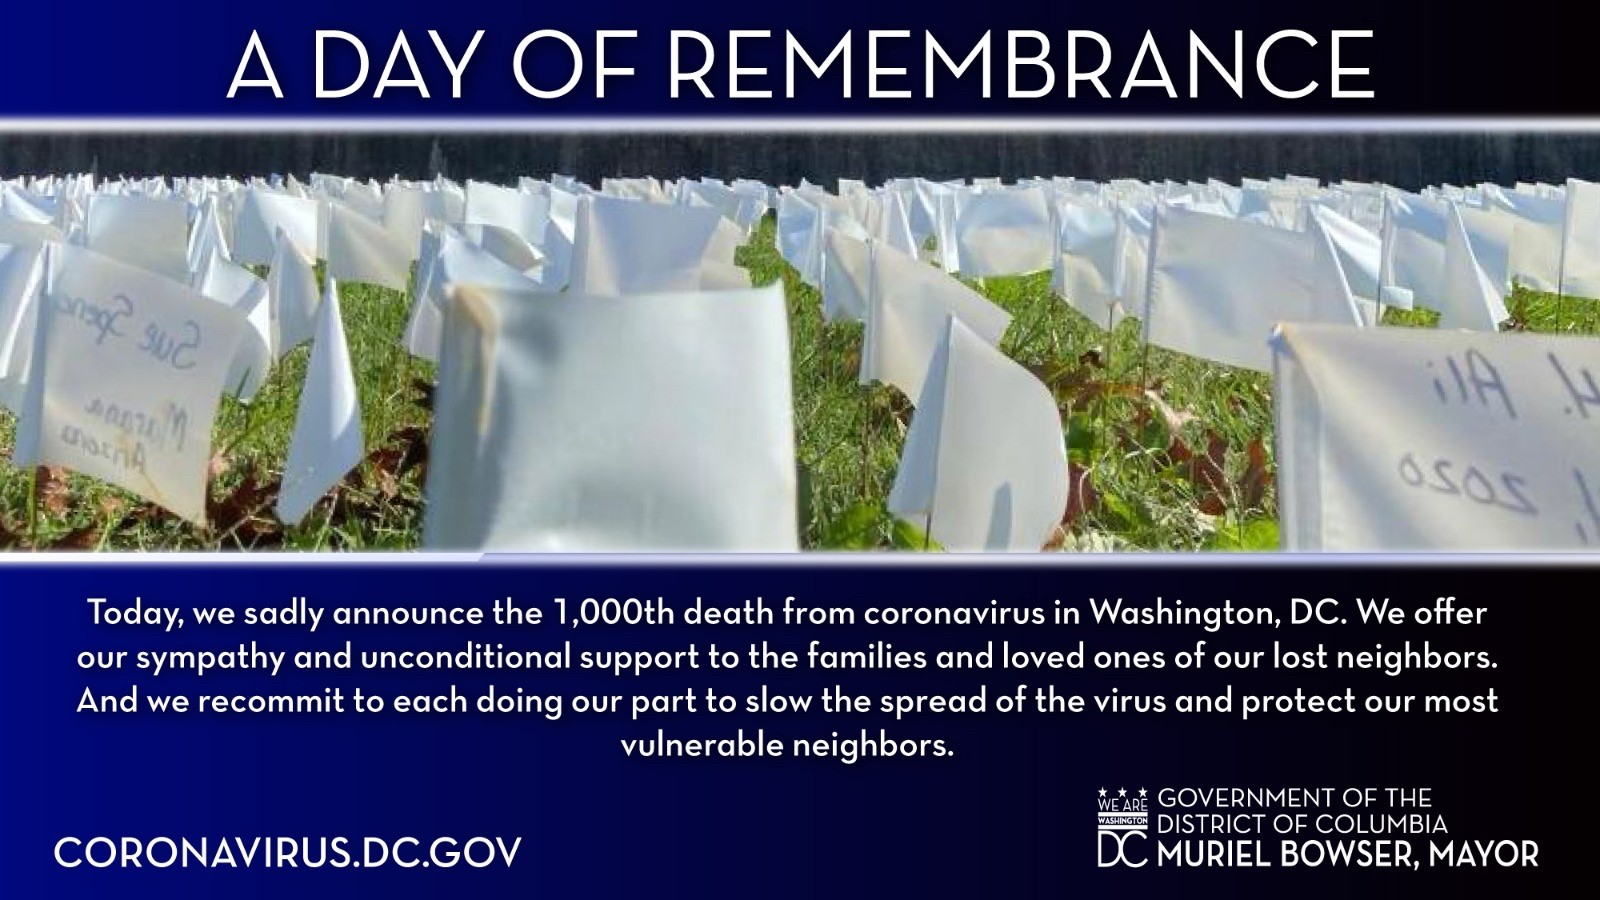 A Day of Remembrance graphic